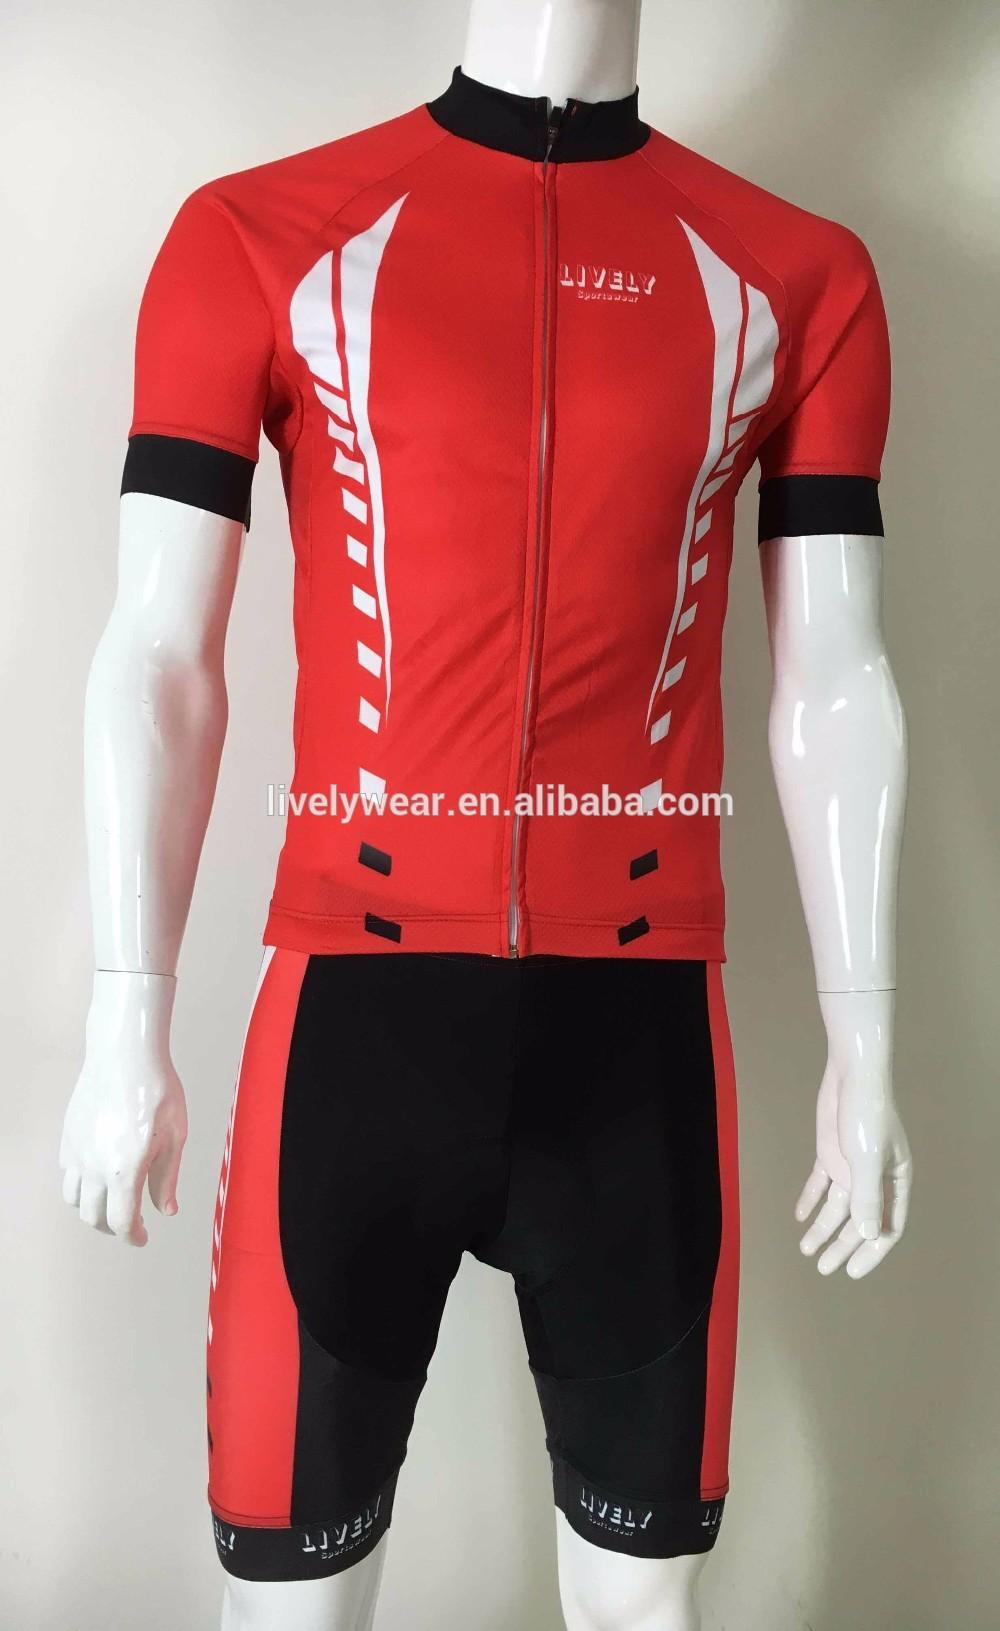 Cycling Wear Template